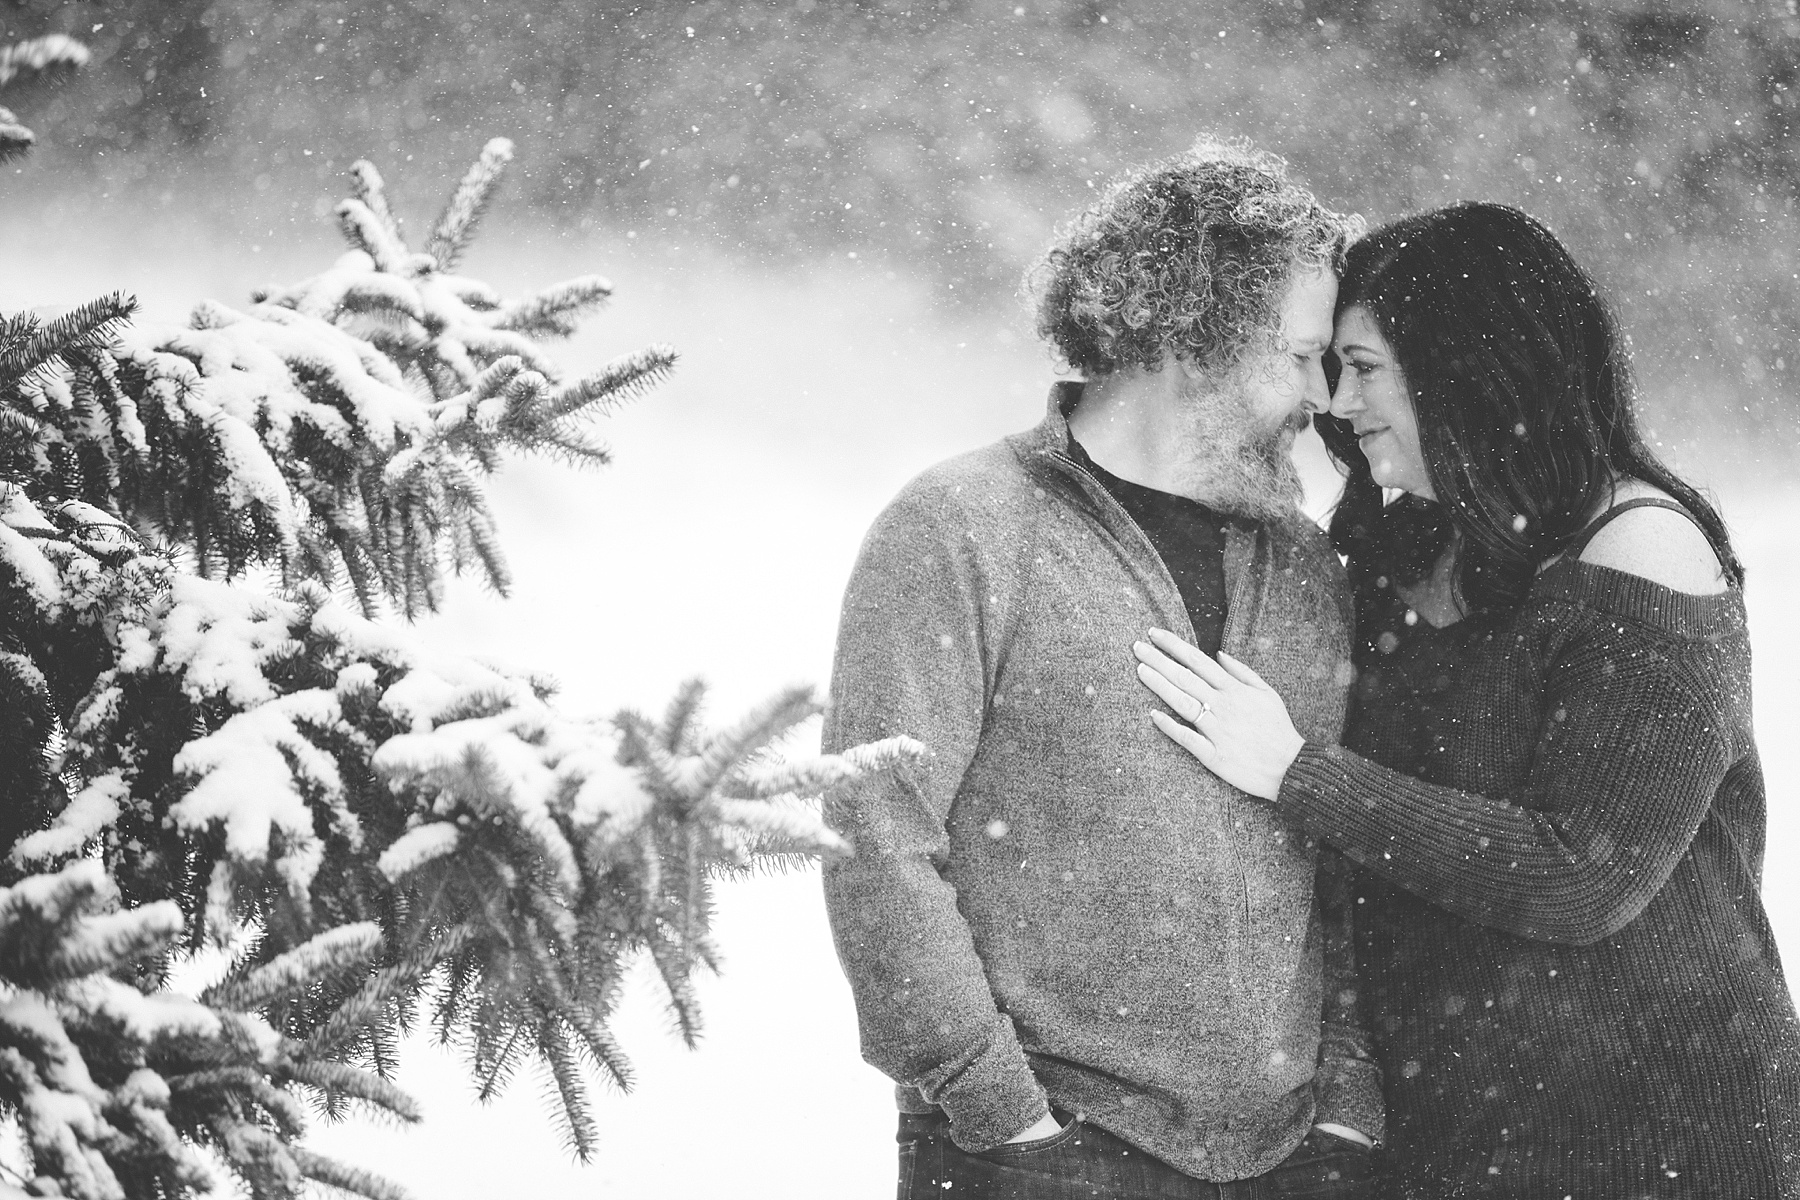 Brandon_Shafer_Photography_Winter_Engagement004.JPG